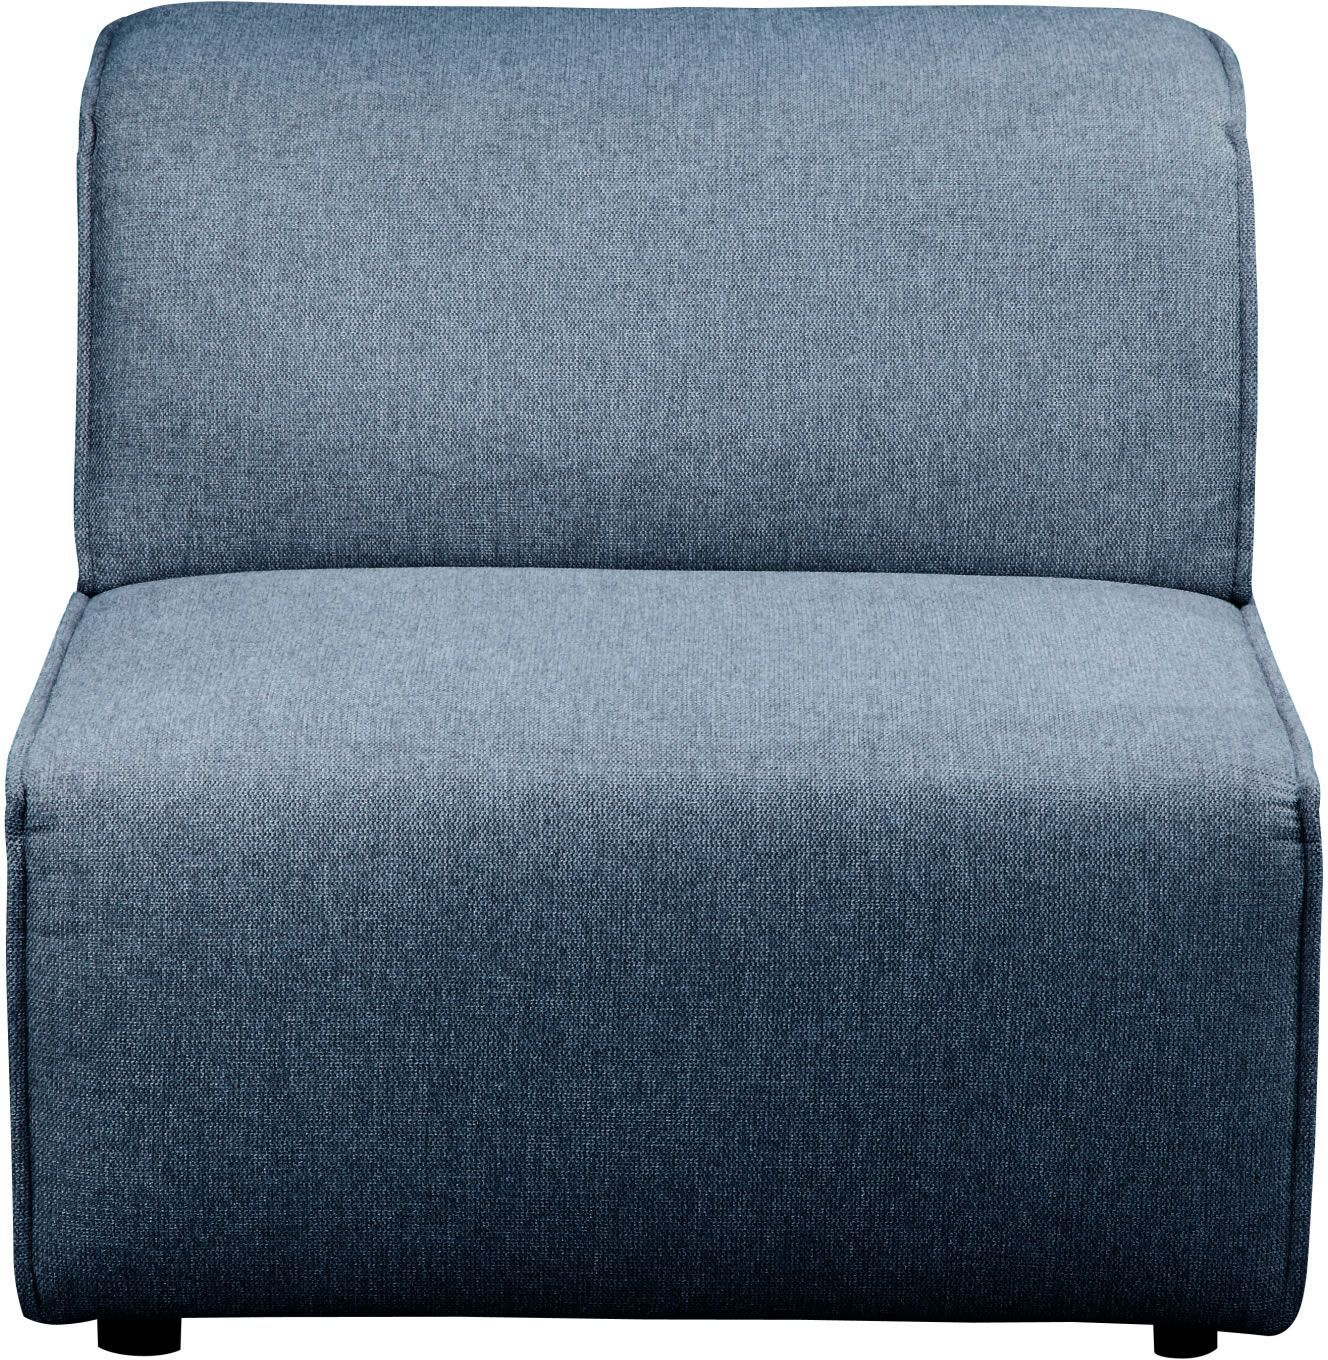 Blue Slipper Chair Rodeo Slipper Chair Blue